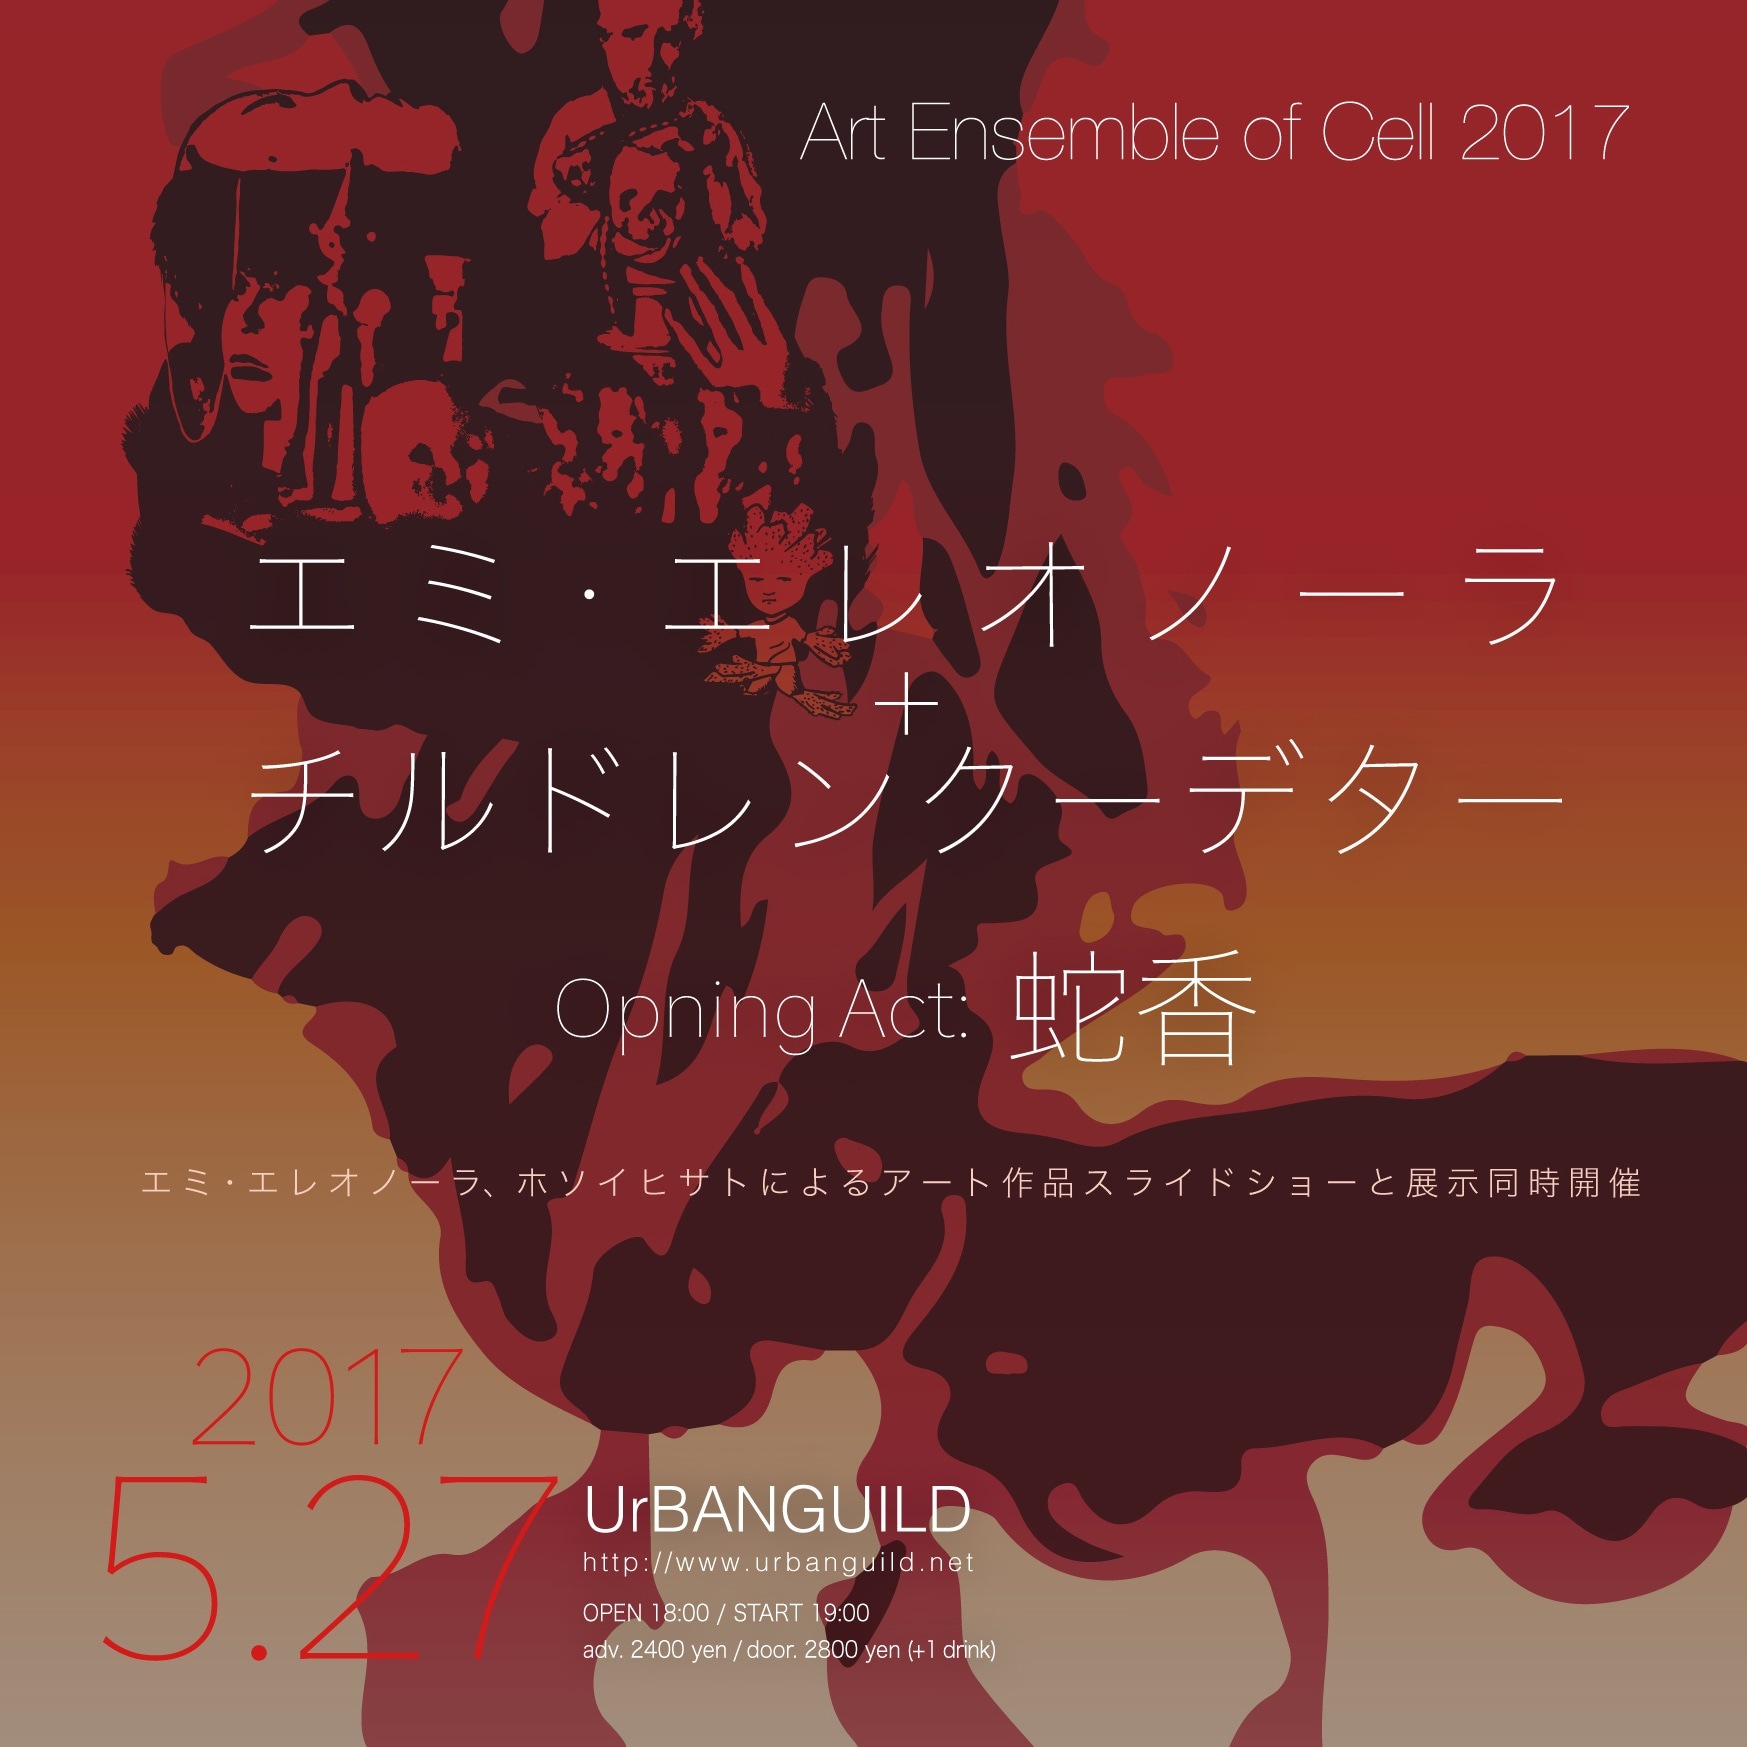 2017-05-27 Art Ensenble of Cell 2017 Flyer-square